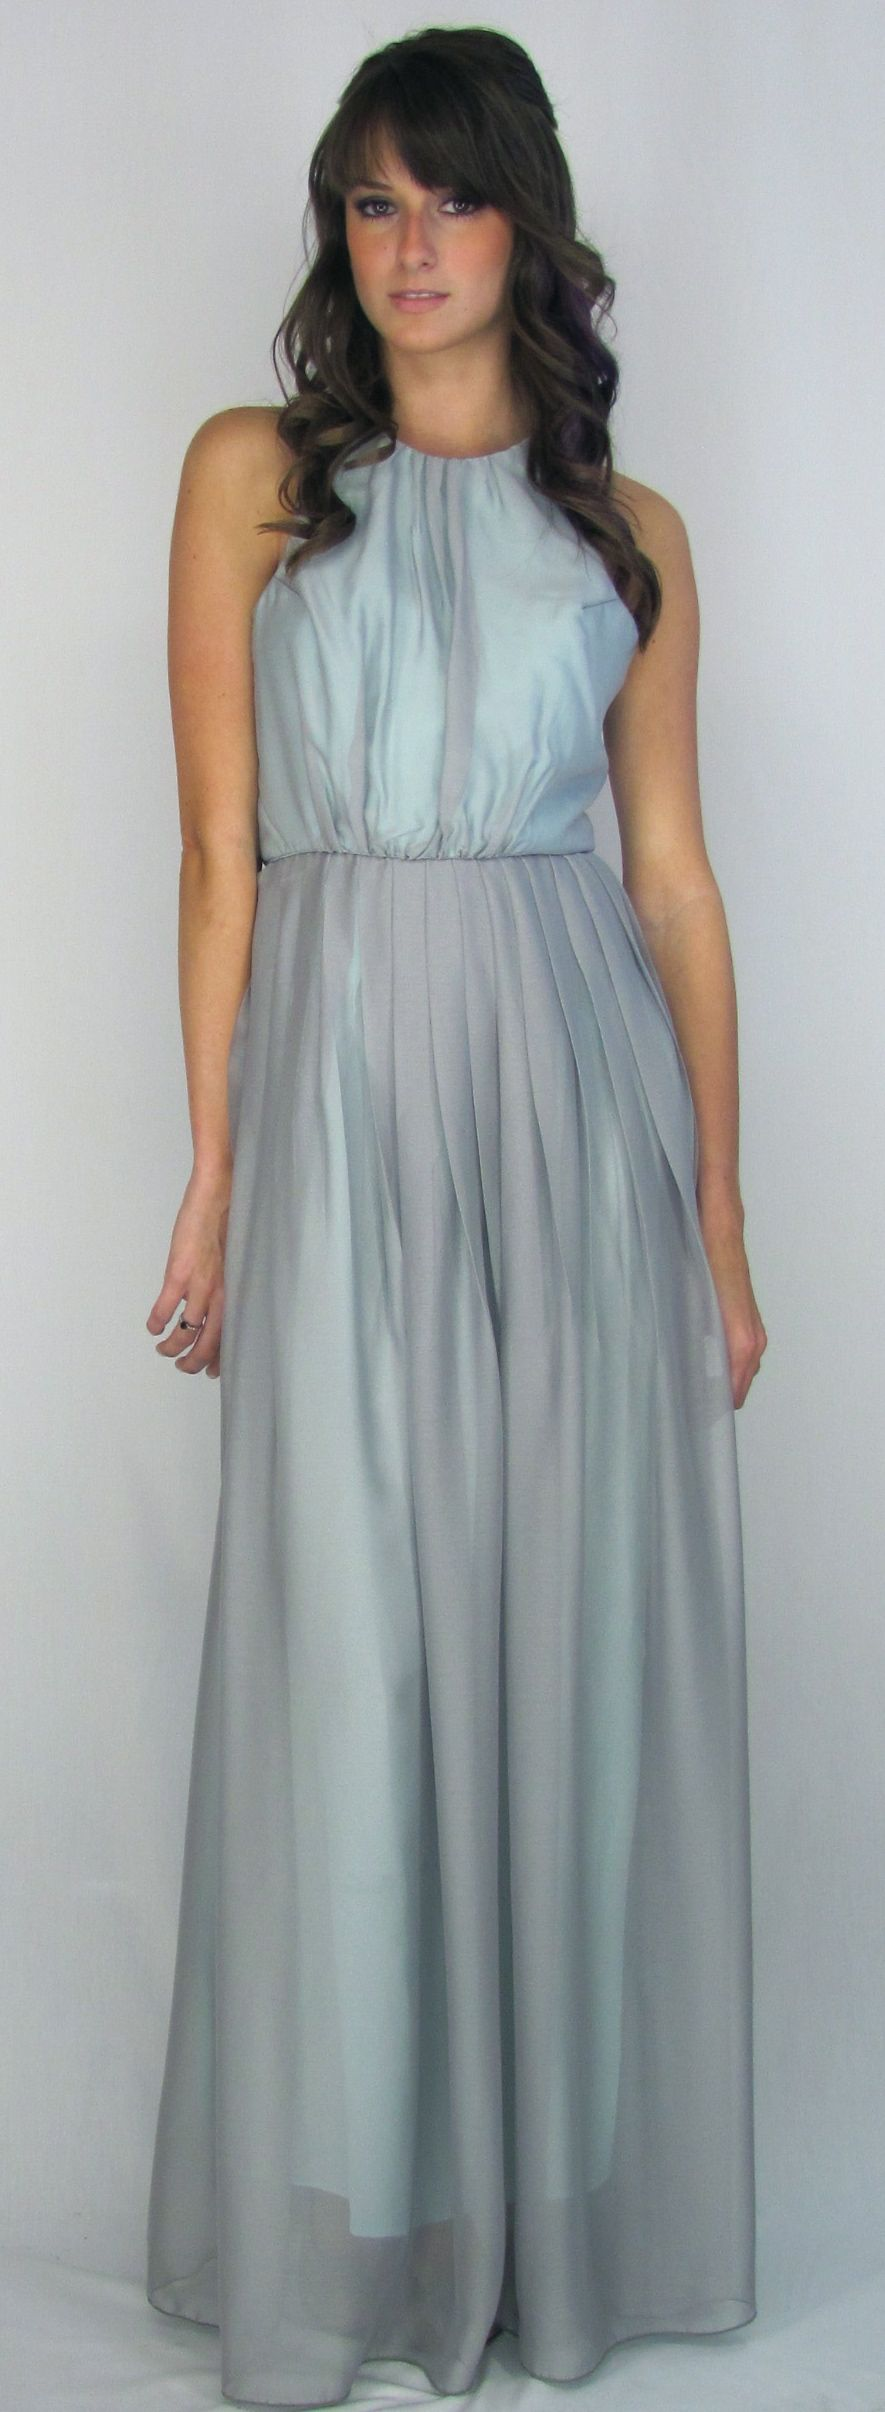 The octavia dress grey chiffon over mint silk someday the octavia dress bridesmaid gown grey silk chiffon layered over mint silk crepe de chine cross detail in back made in america ombrellifo Image collections